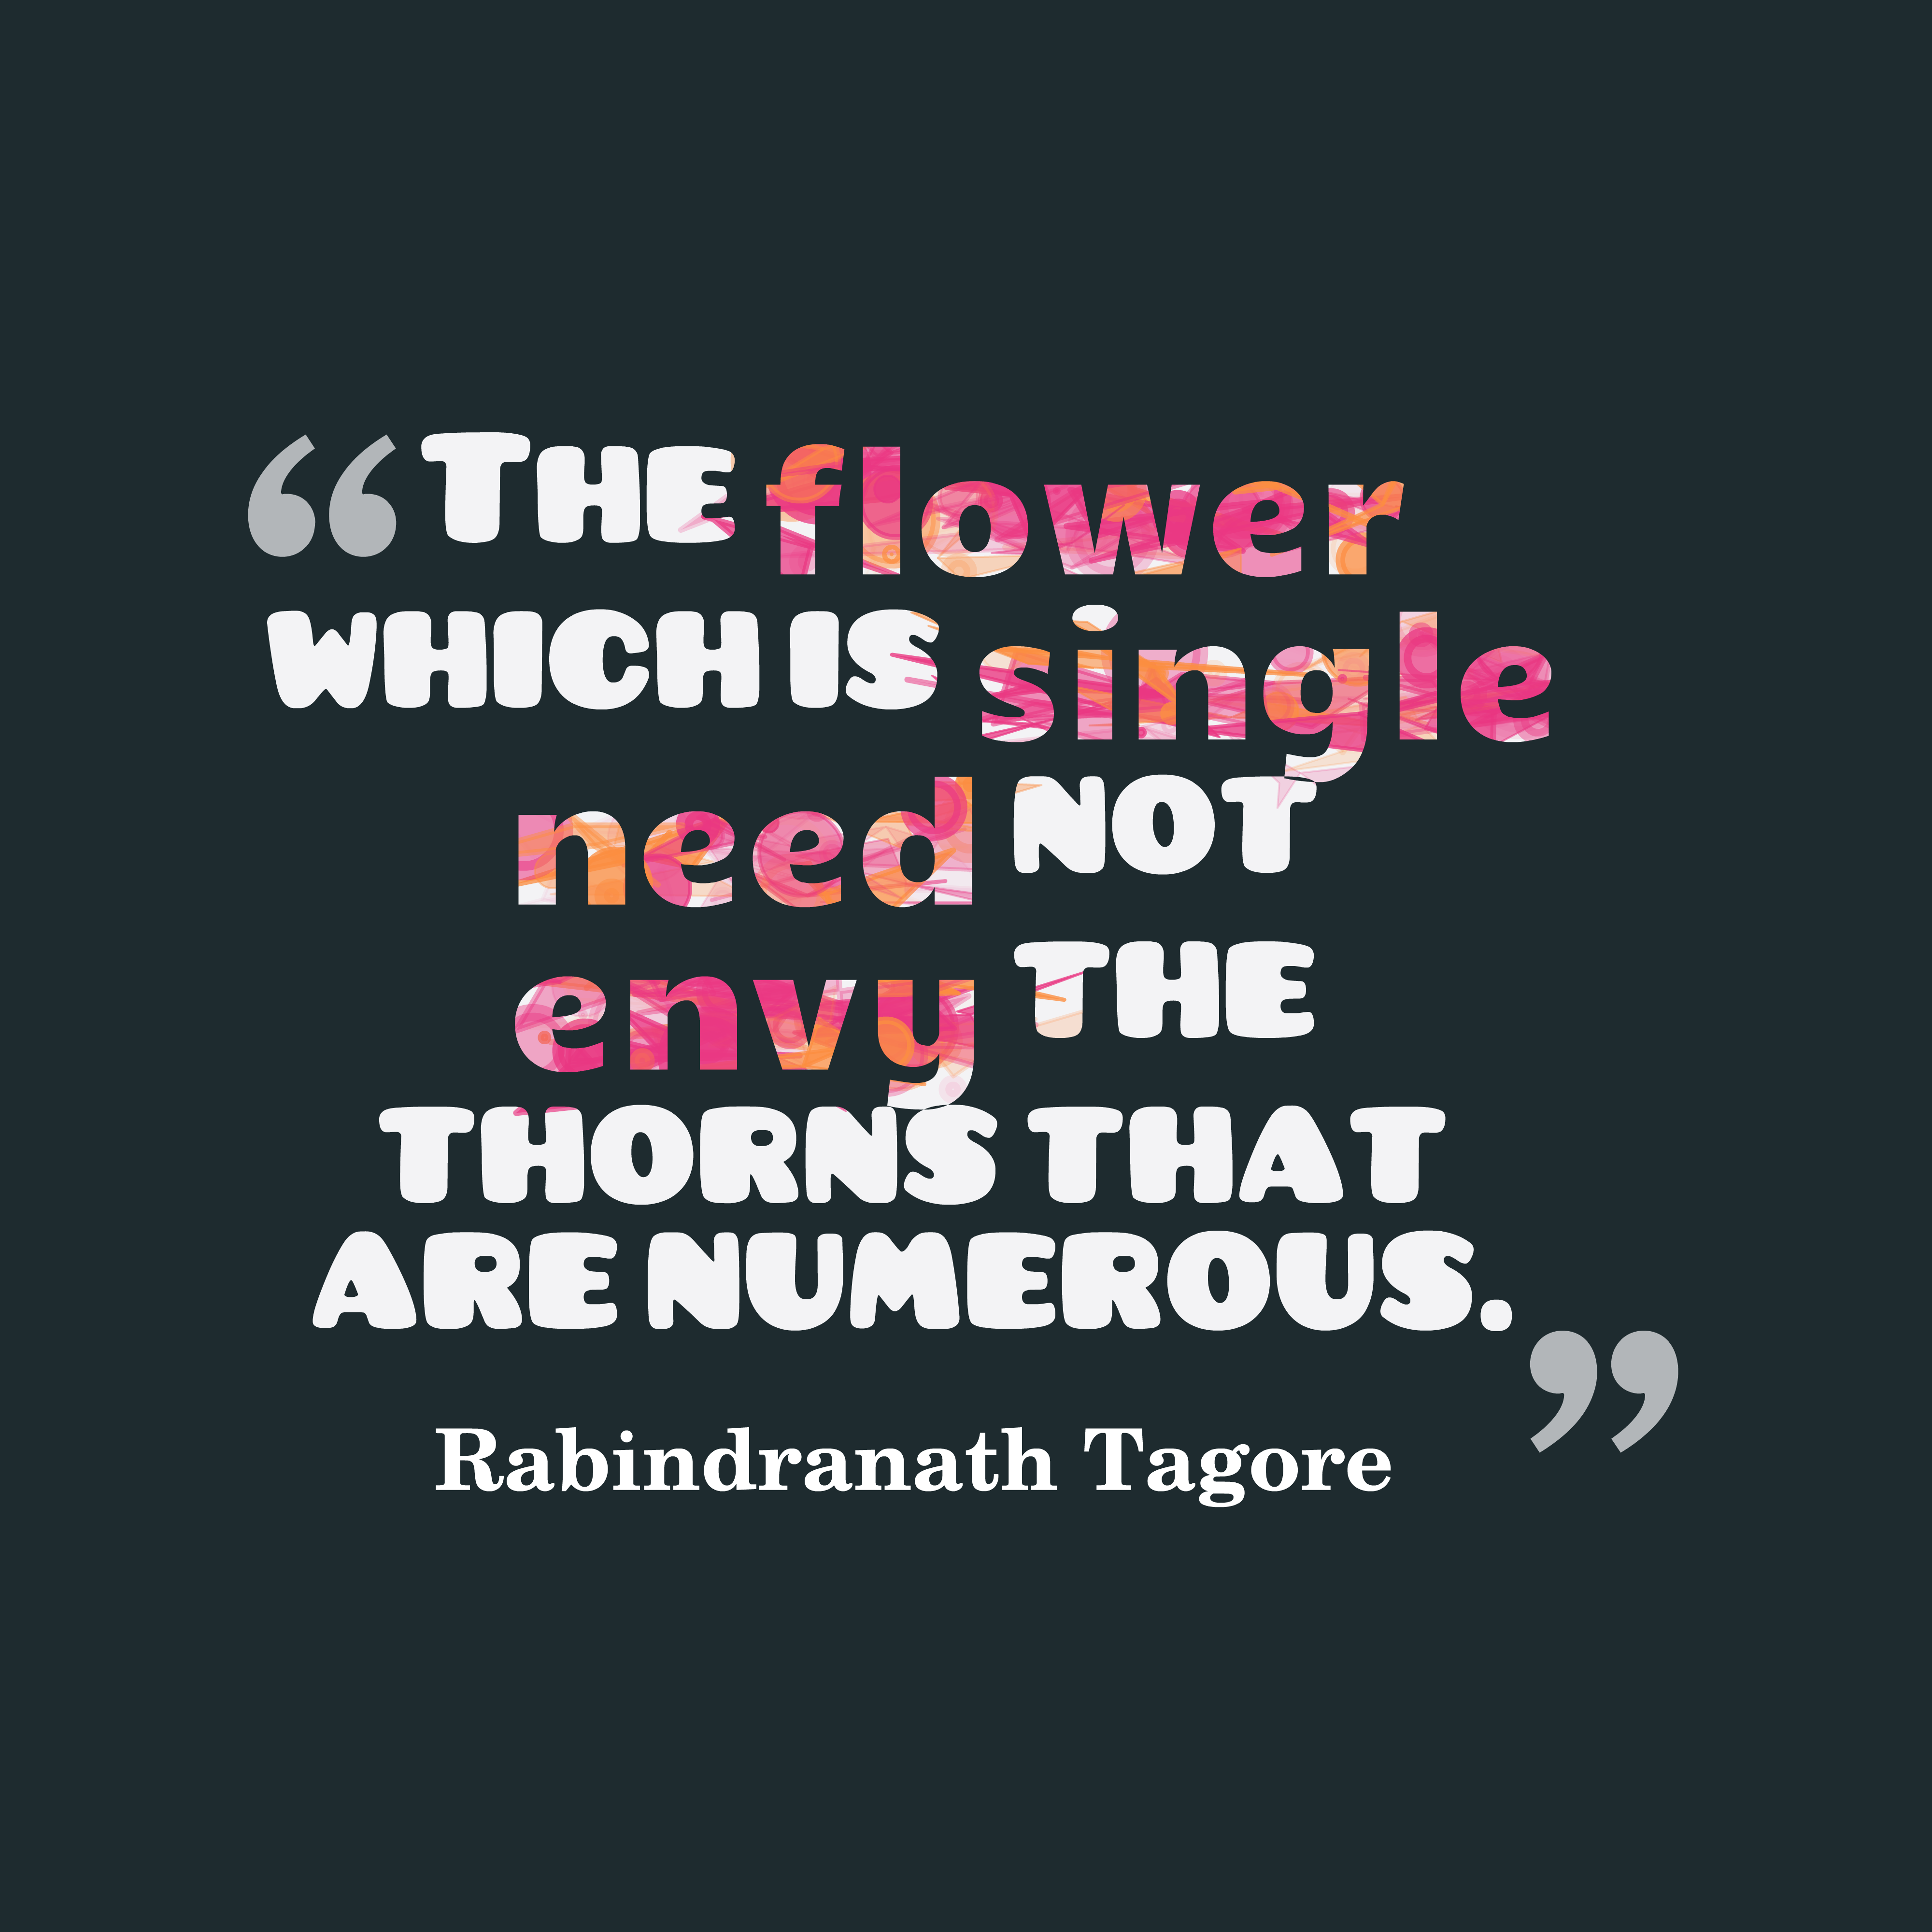 Rabindranath Tagore Quote About Gardening